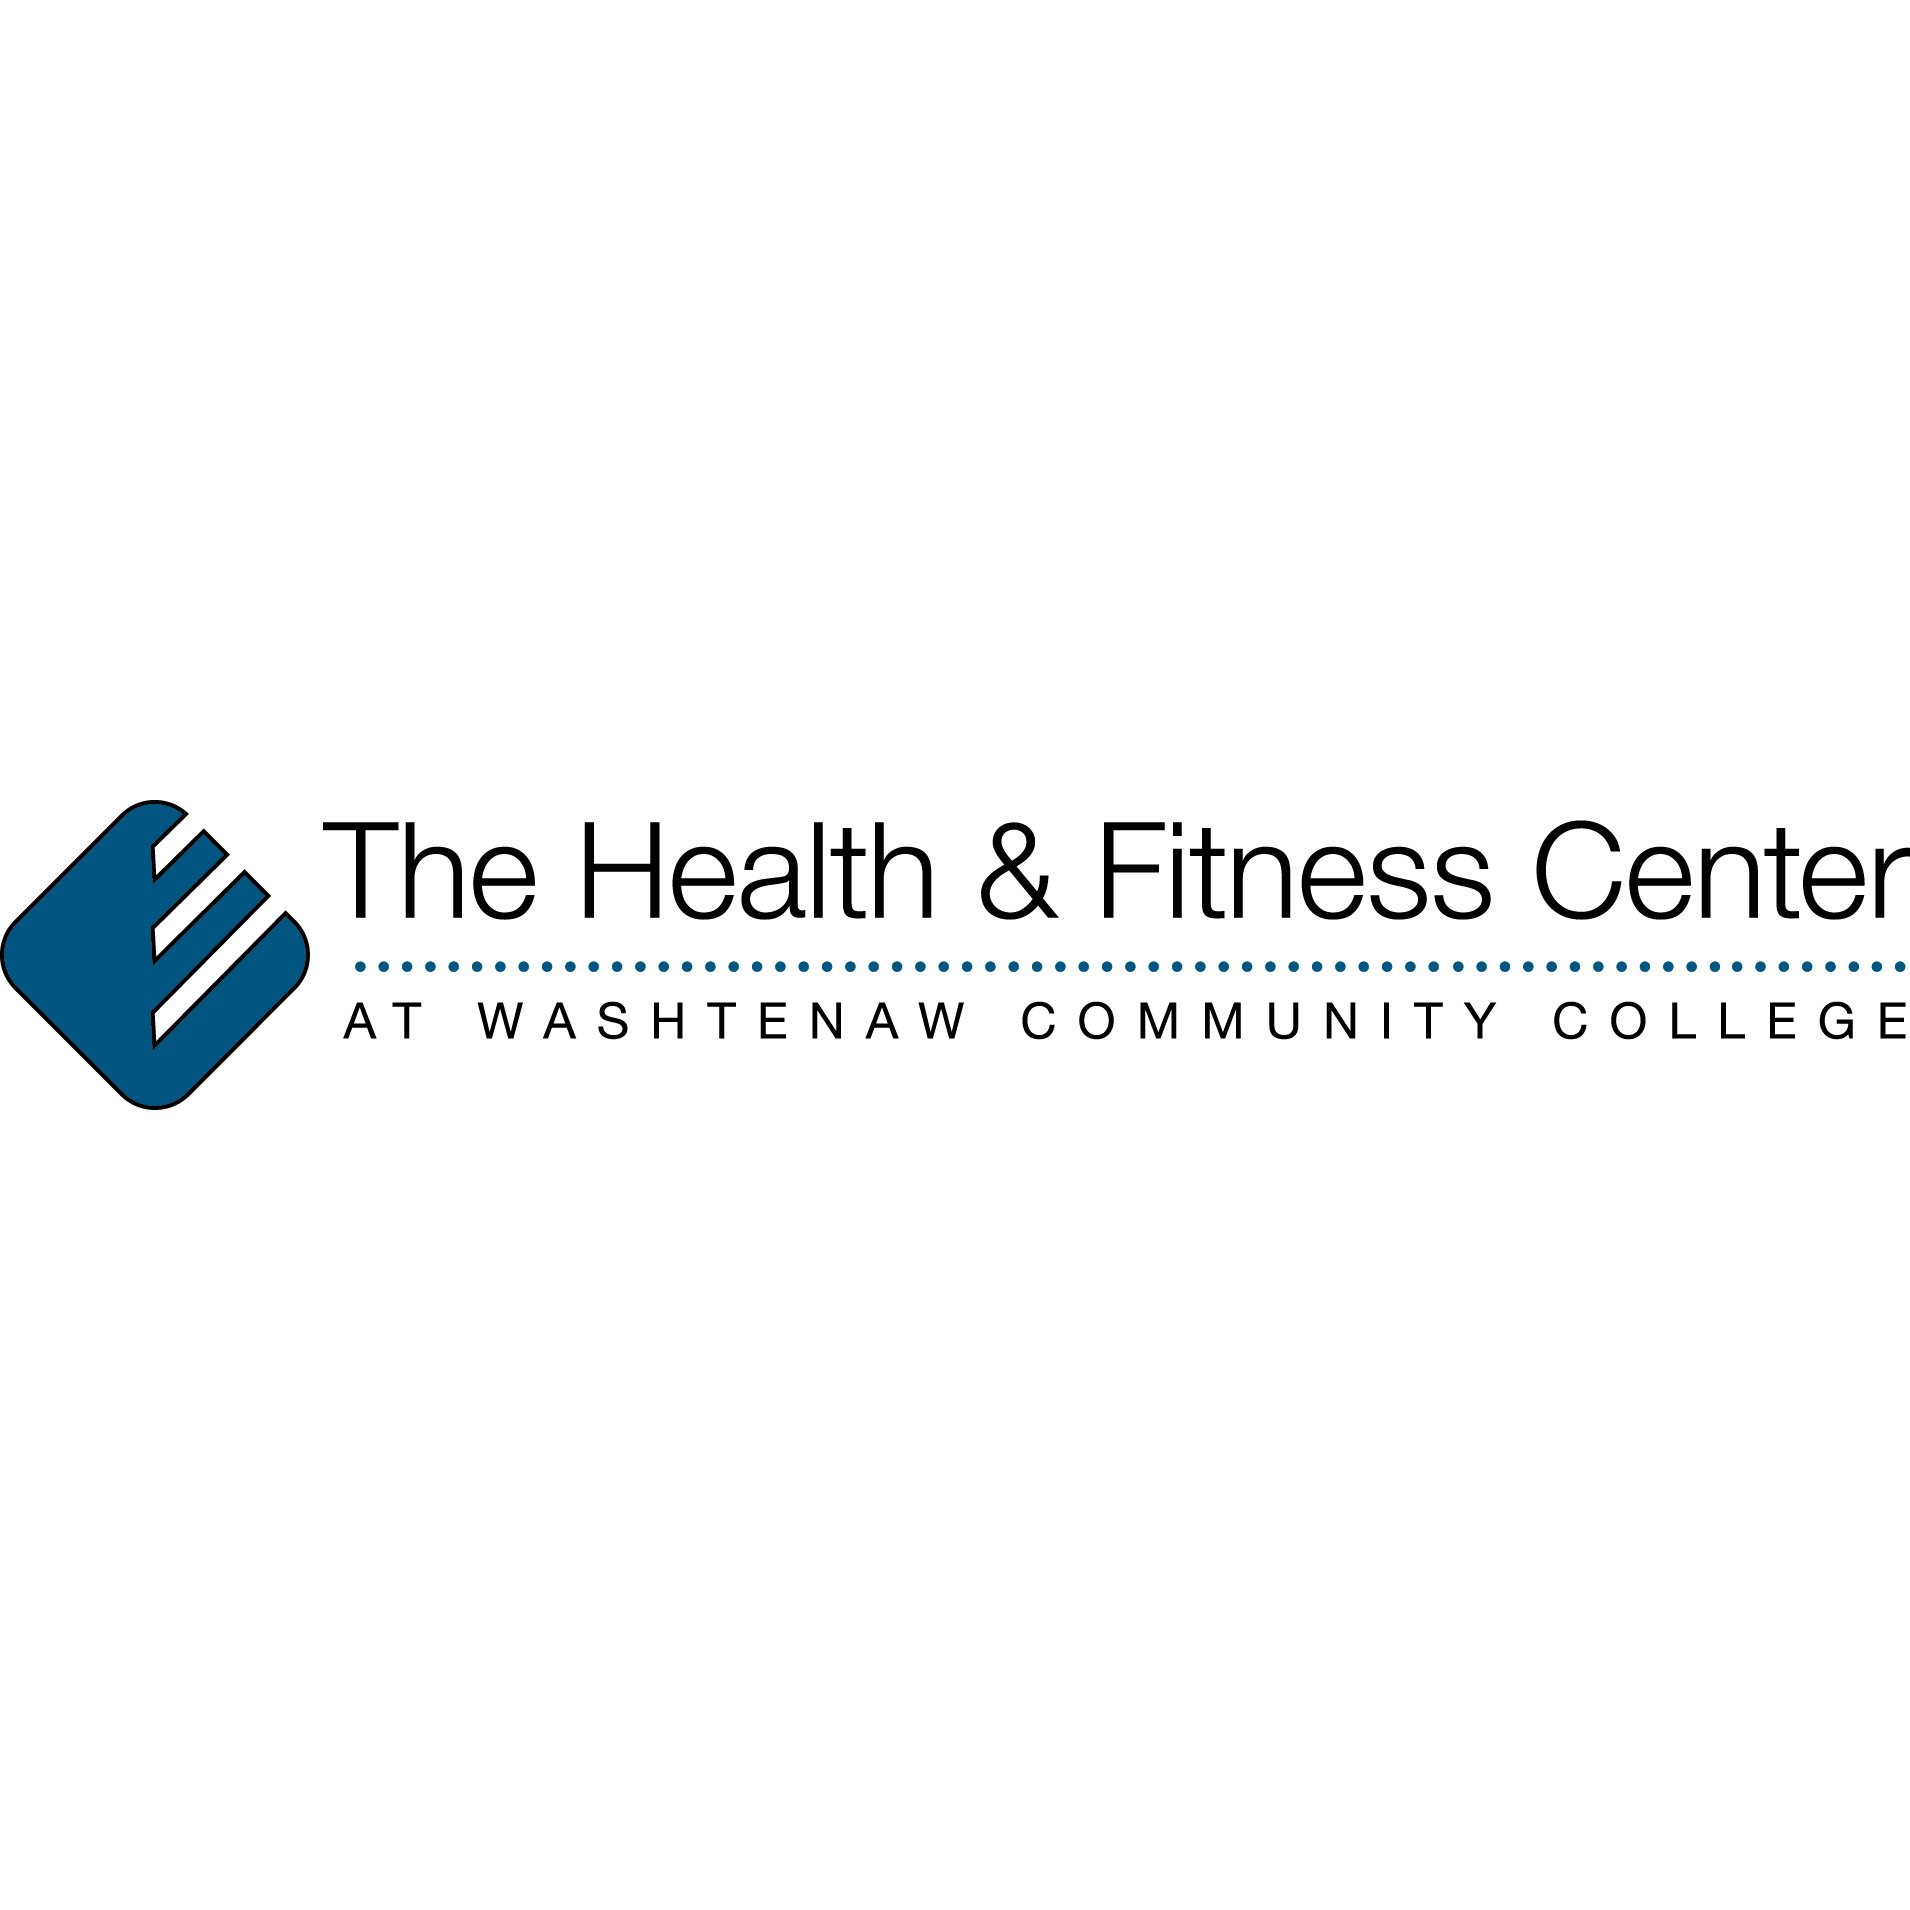 The Health & Fitness Center at Washtenaw Community College